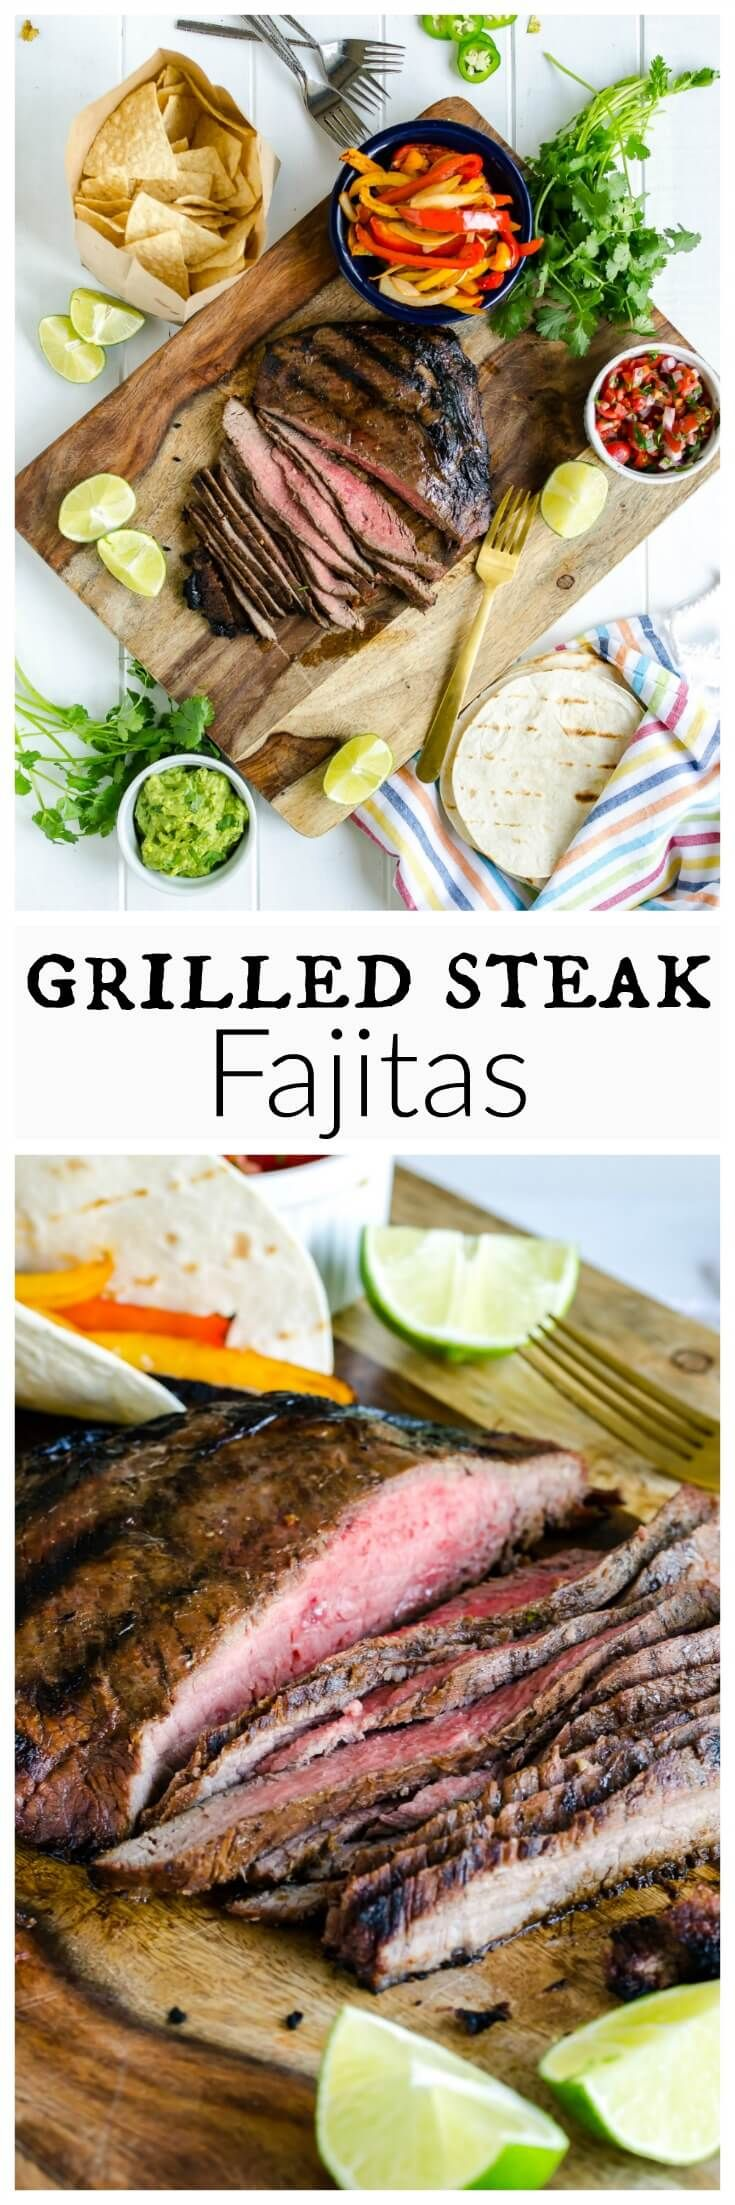 Easy Mexican Main Dishes Part - 42: GRILLED STEAK FAJITAS RECIPE Tender Juicy Steak Loaded With Flavor, Topped  With Crisp Peppers And